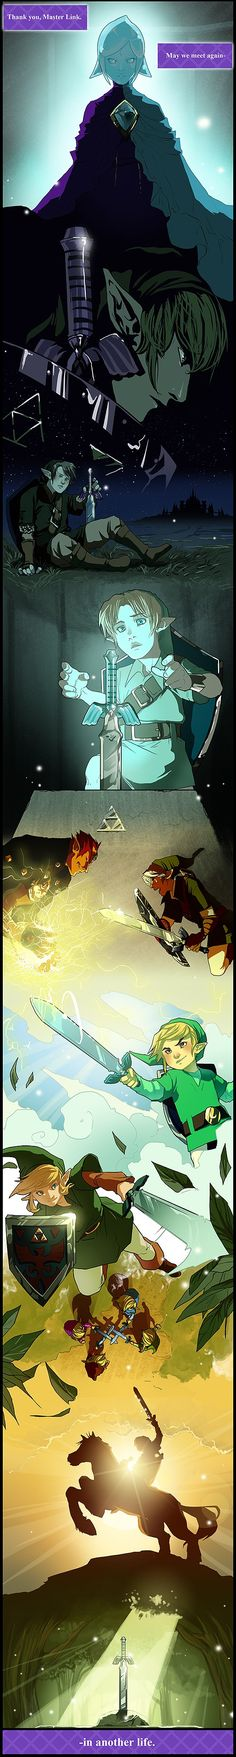 "The Many Legends of Zelda (and Link). F.Y.I. She's in the Master Sword. ""You Don't Say?"""